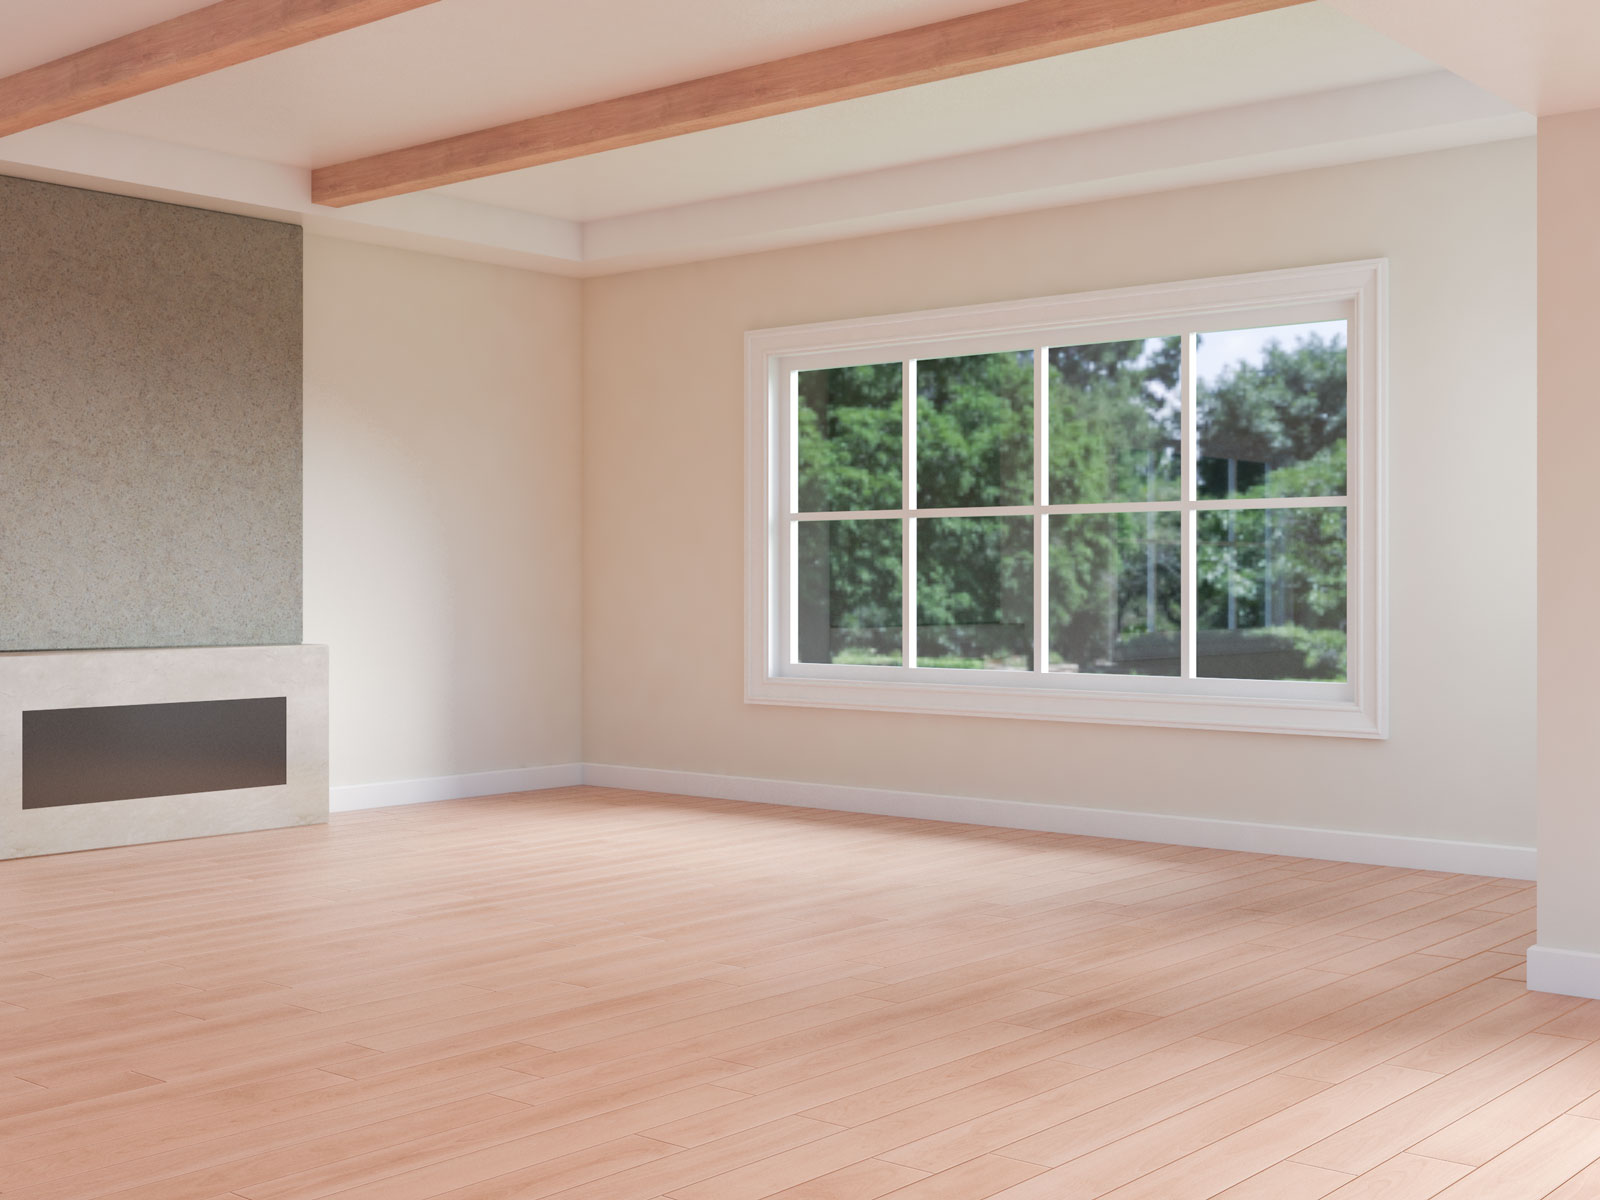 White dove walls with red oak floors